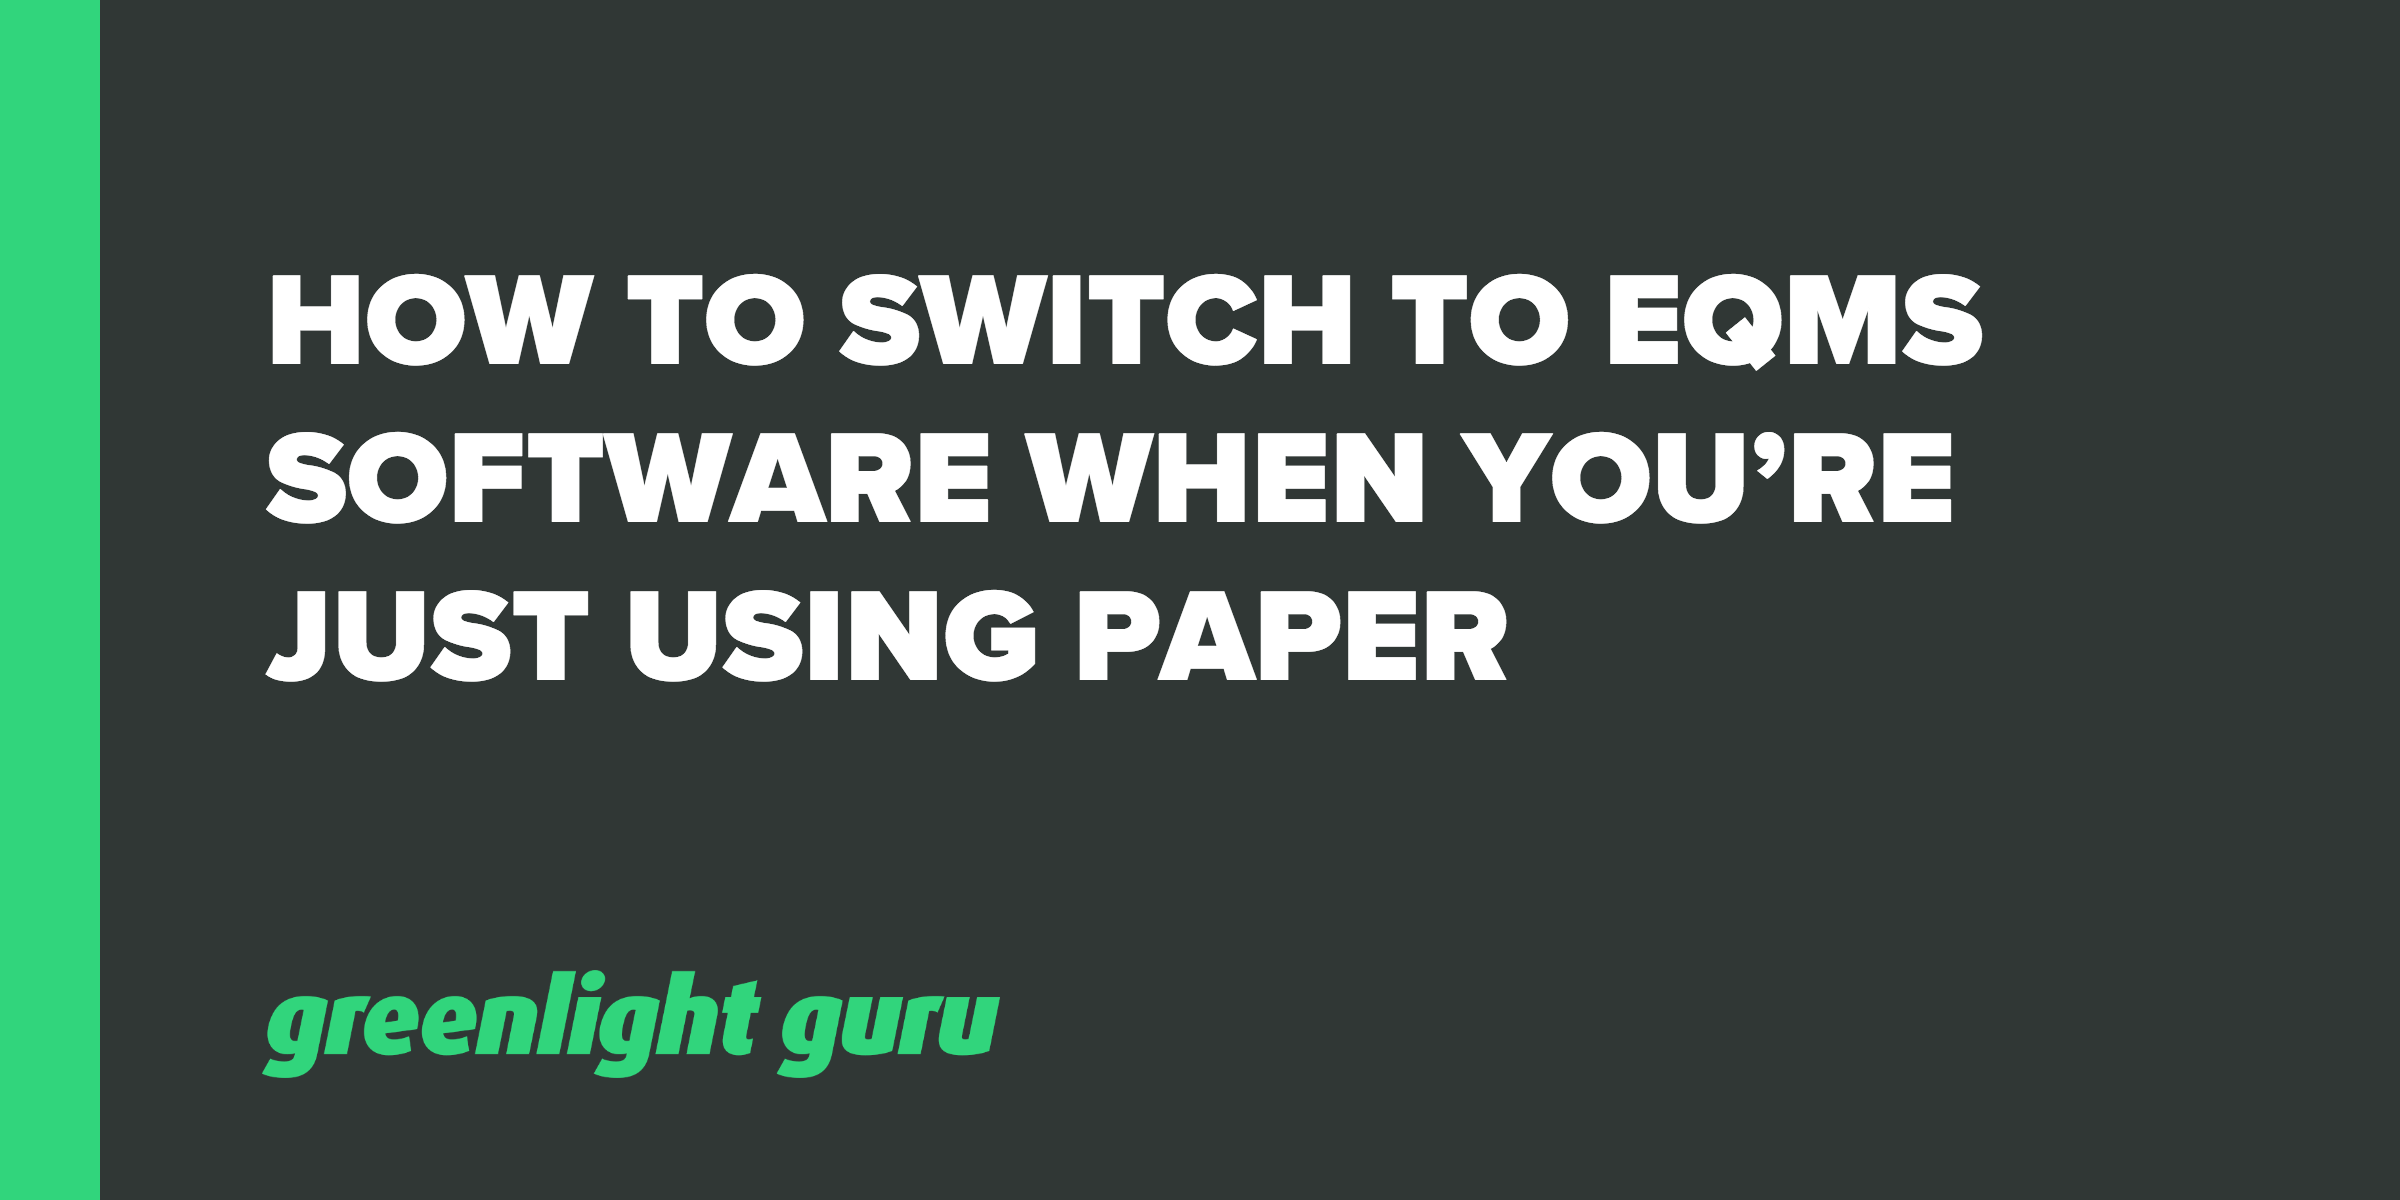 How to Switch to eQMS Software When You're Just Using Paper - Featured Image